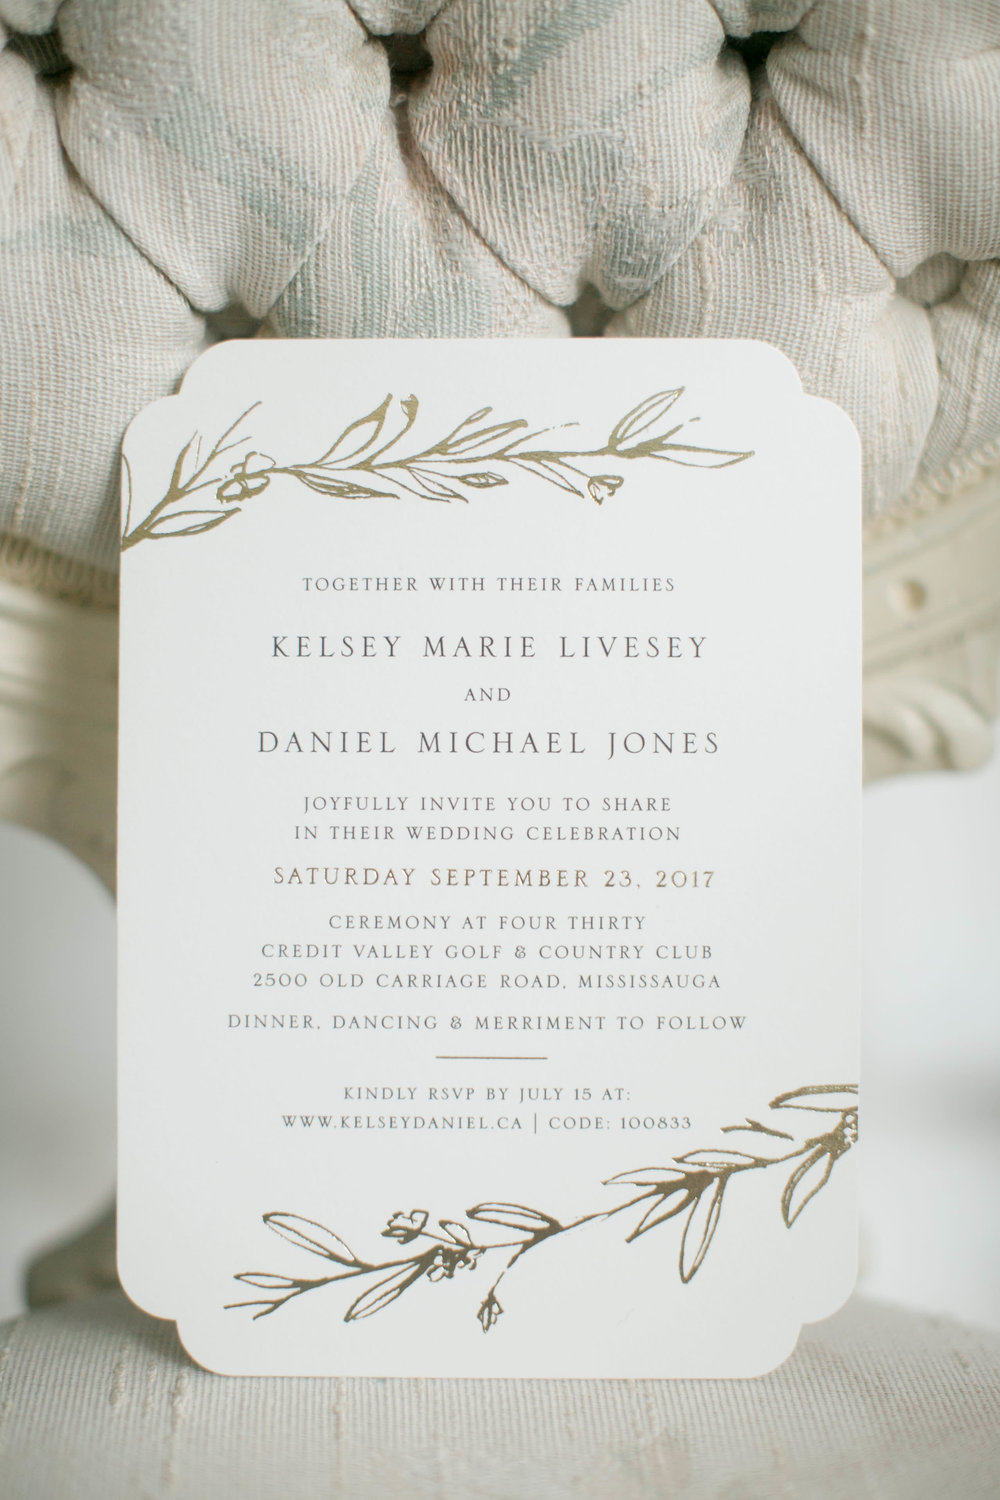 Kelsey___Daniel___High_Res_Finals___Daniel_Ricci_Weddings_84.jpg